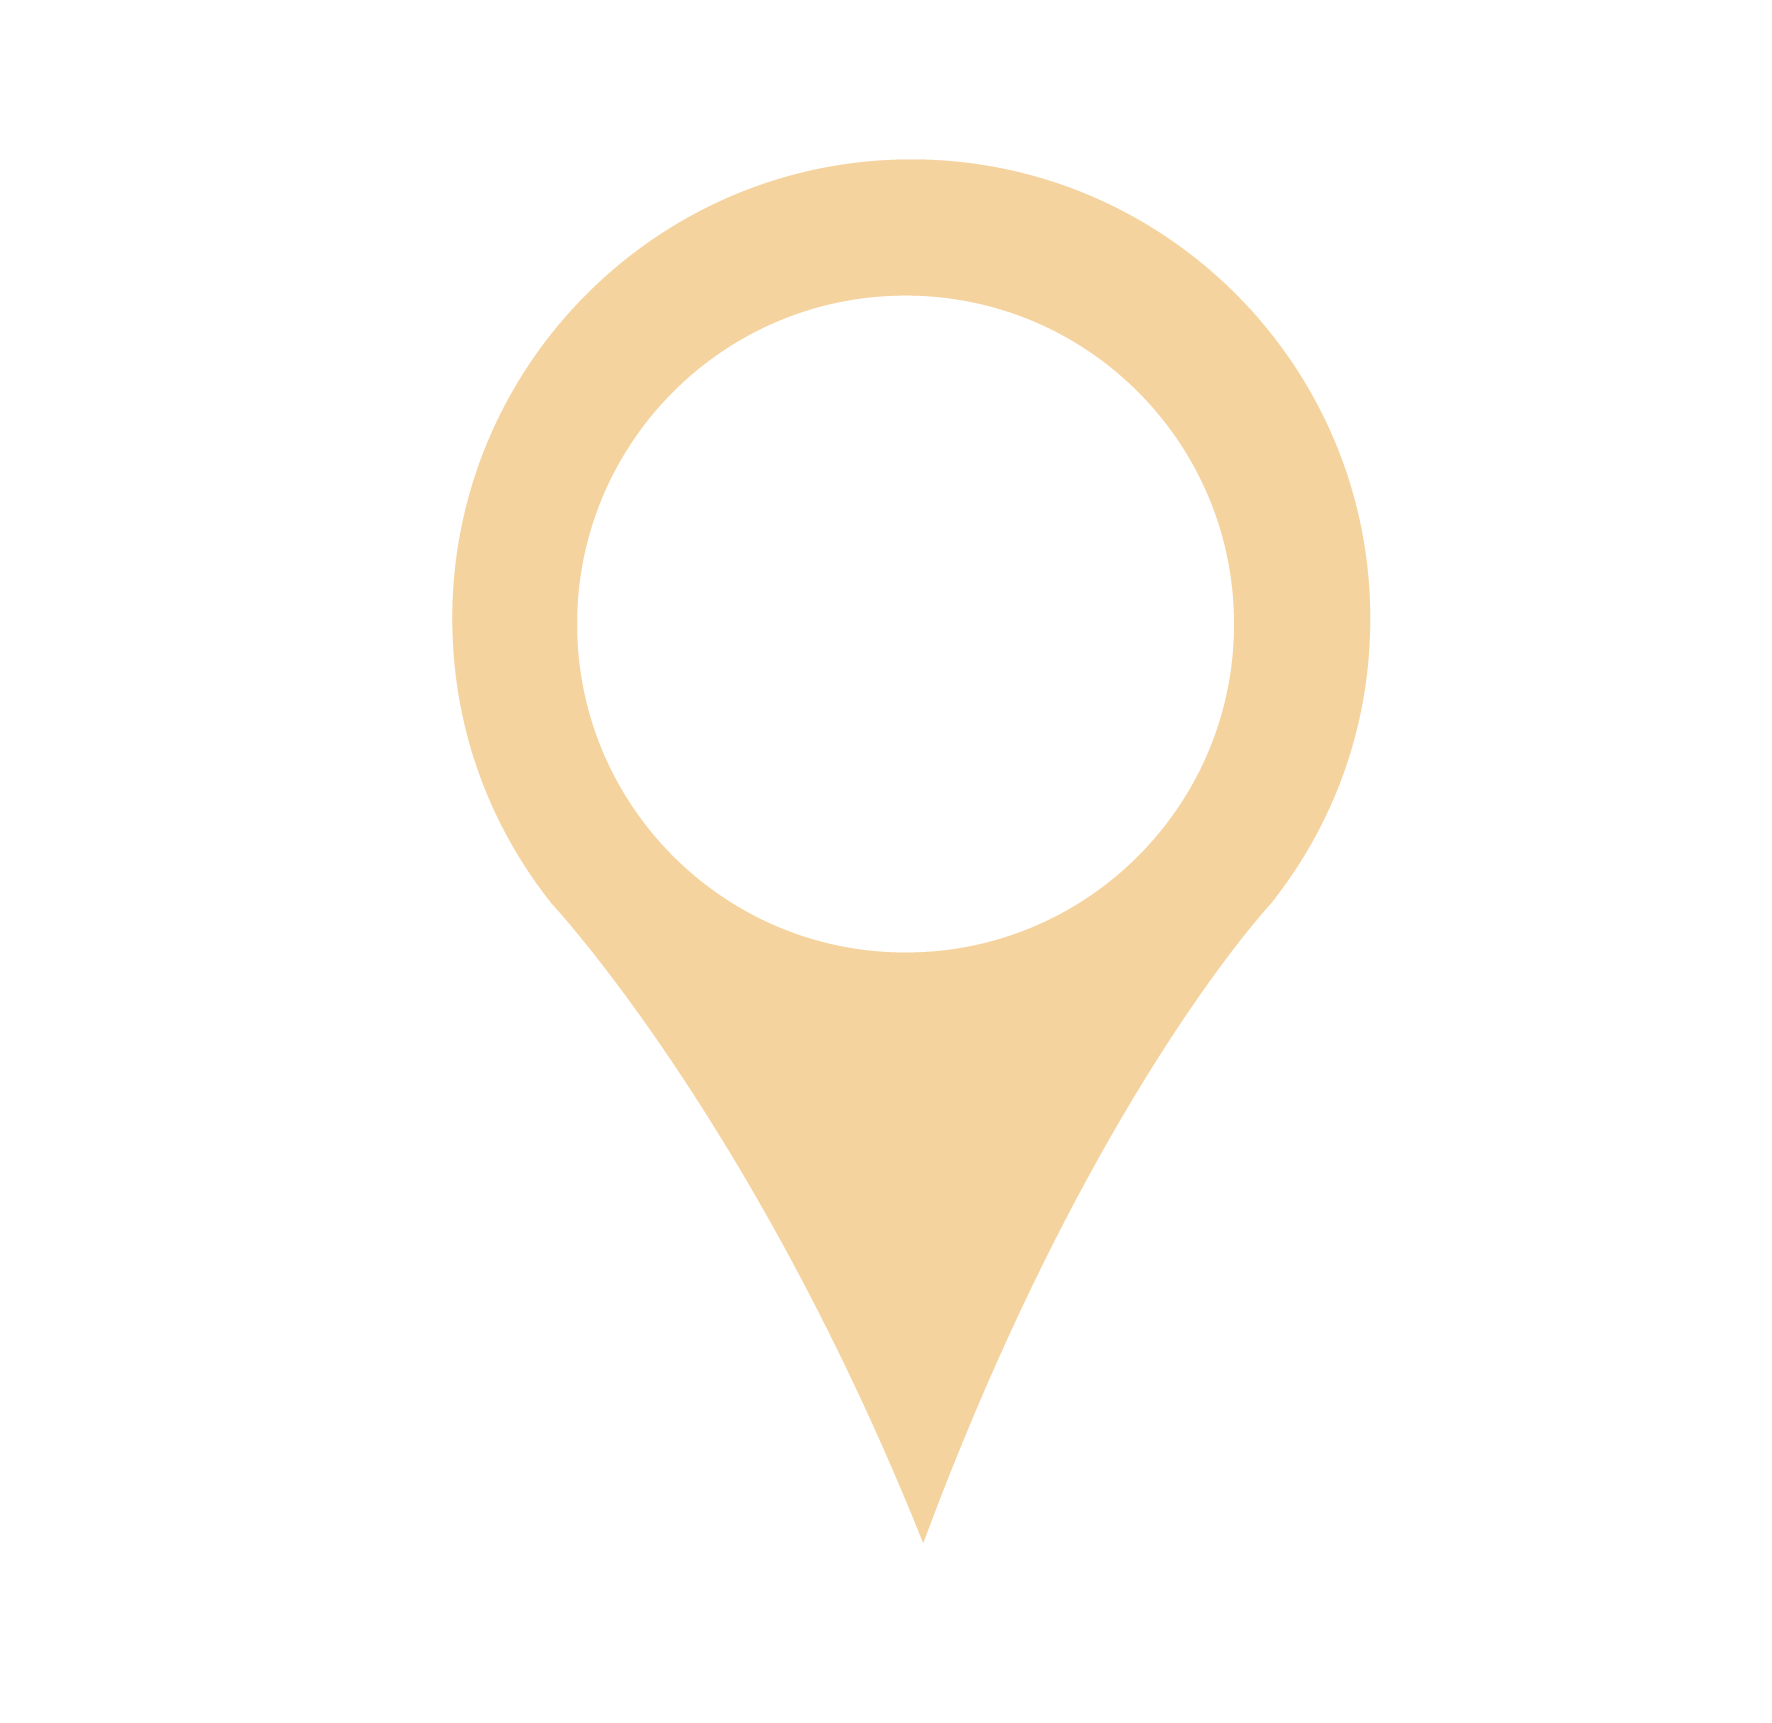 Location map symbol